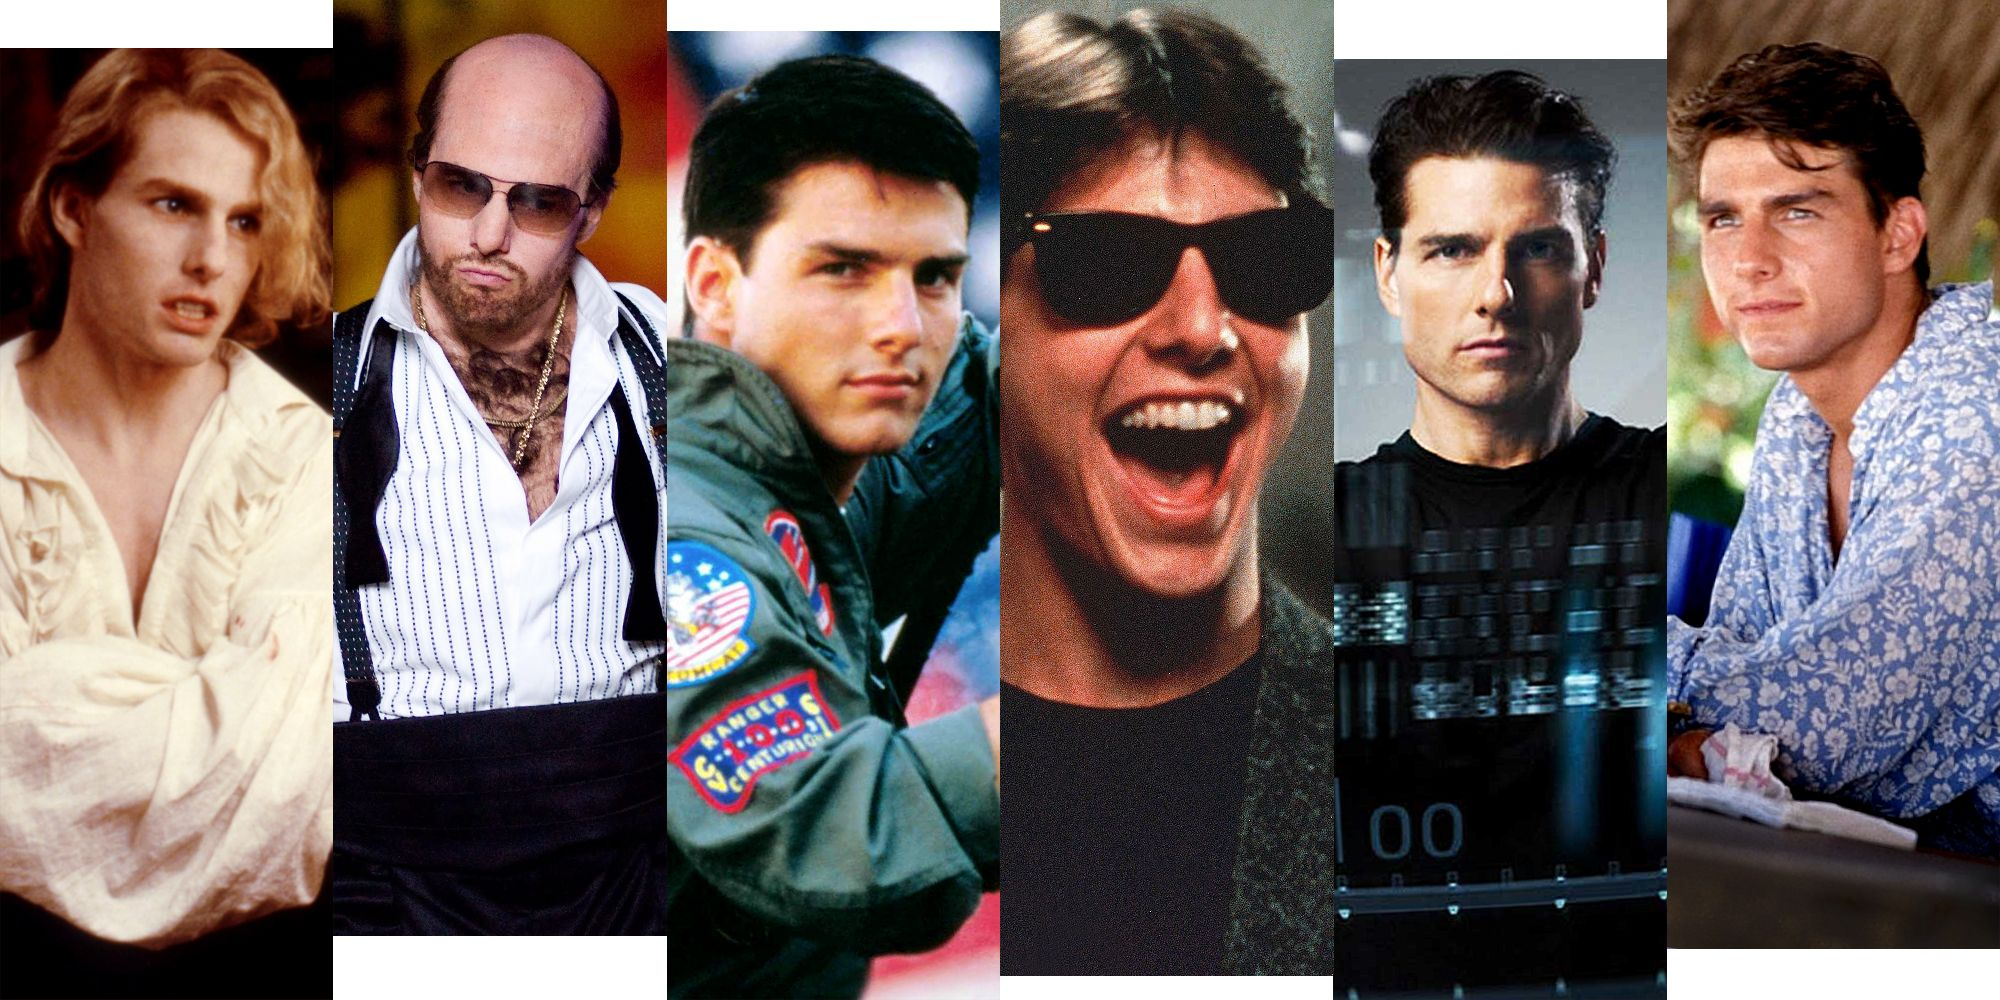 All Tom Cruise Movies Ranked From Top Gun to Mission Impossible